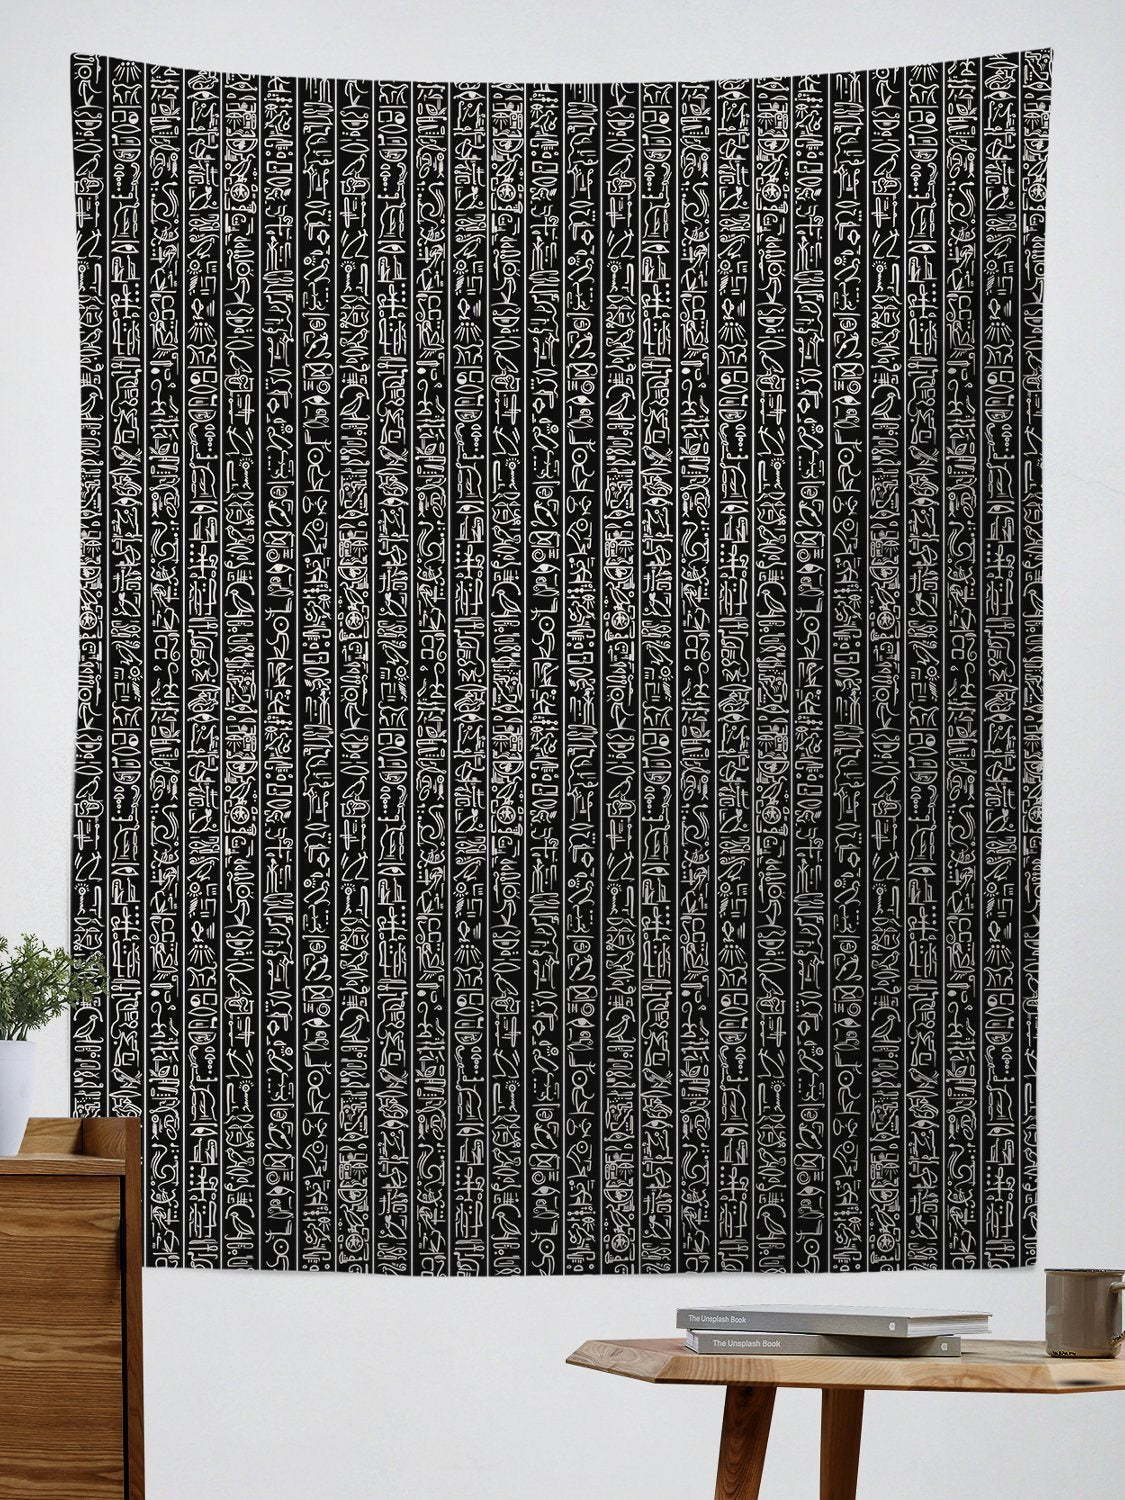 Egyptian Glyphs (Black) Tapestry Tapestry Electro Threads